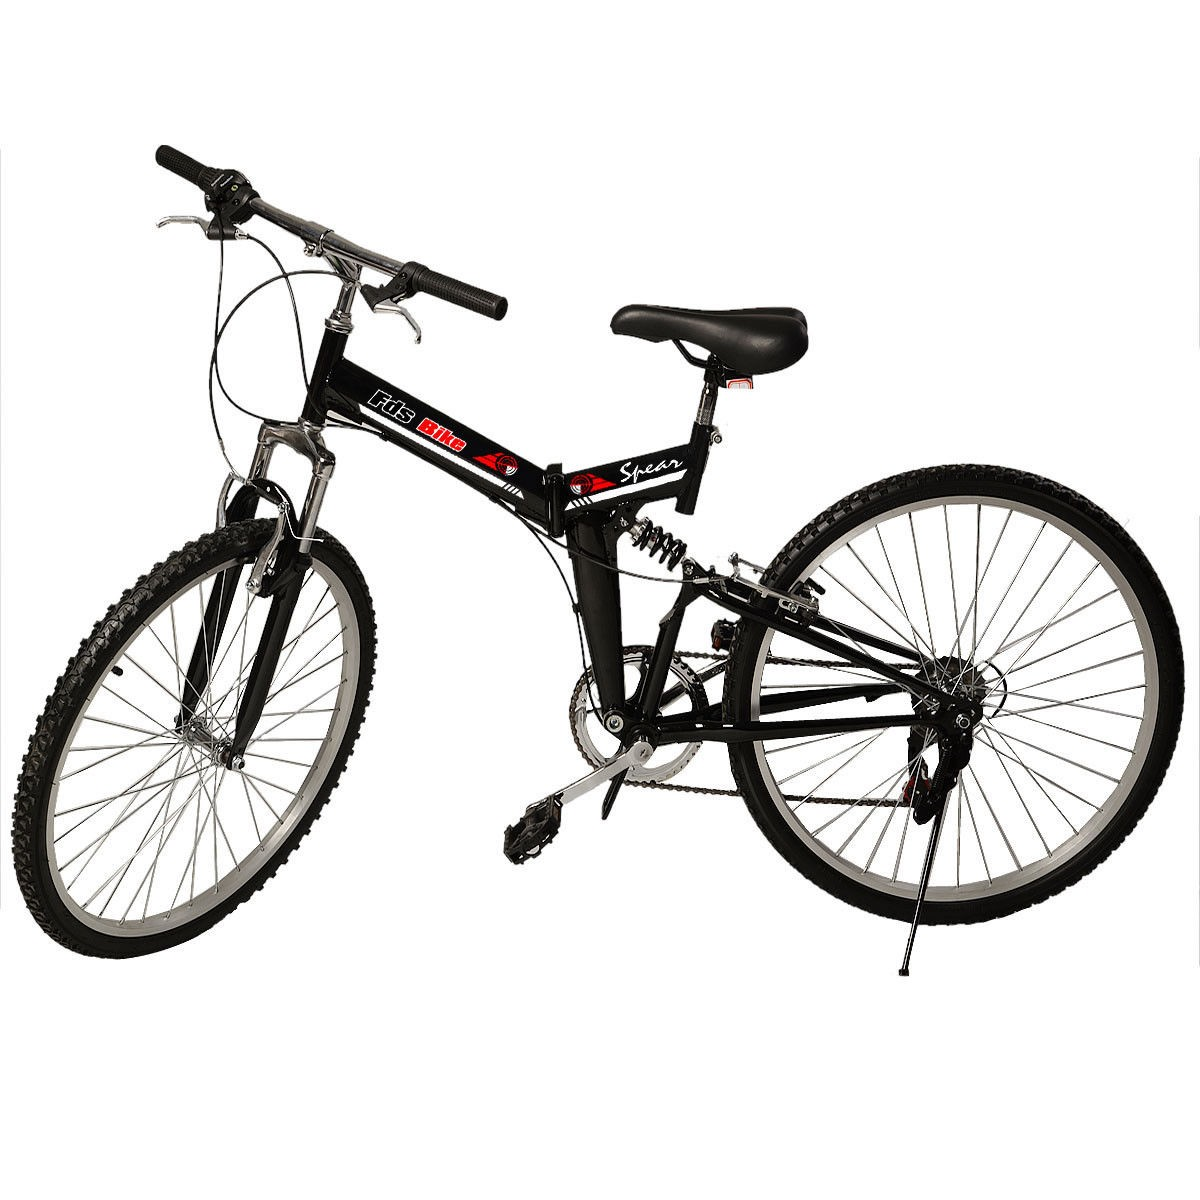 "New 26"" Folding 6 Speed Mountain Bike Bicycle Shimano Sch..."